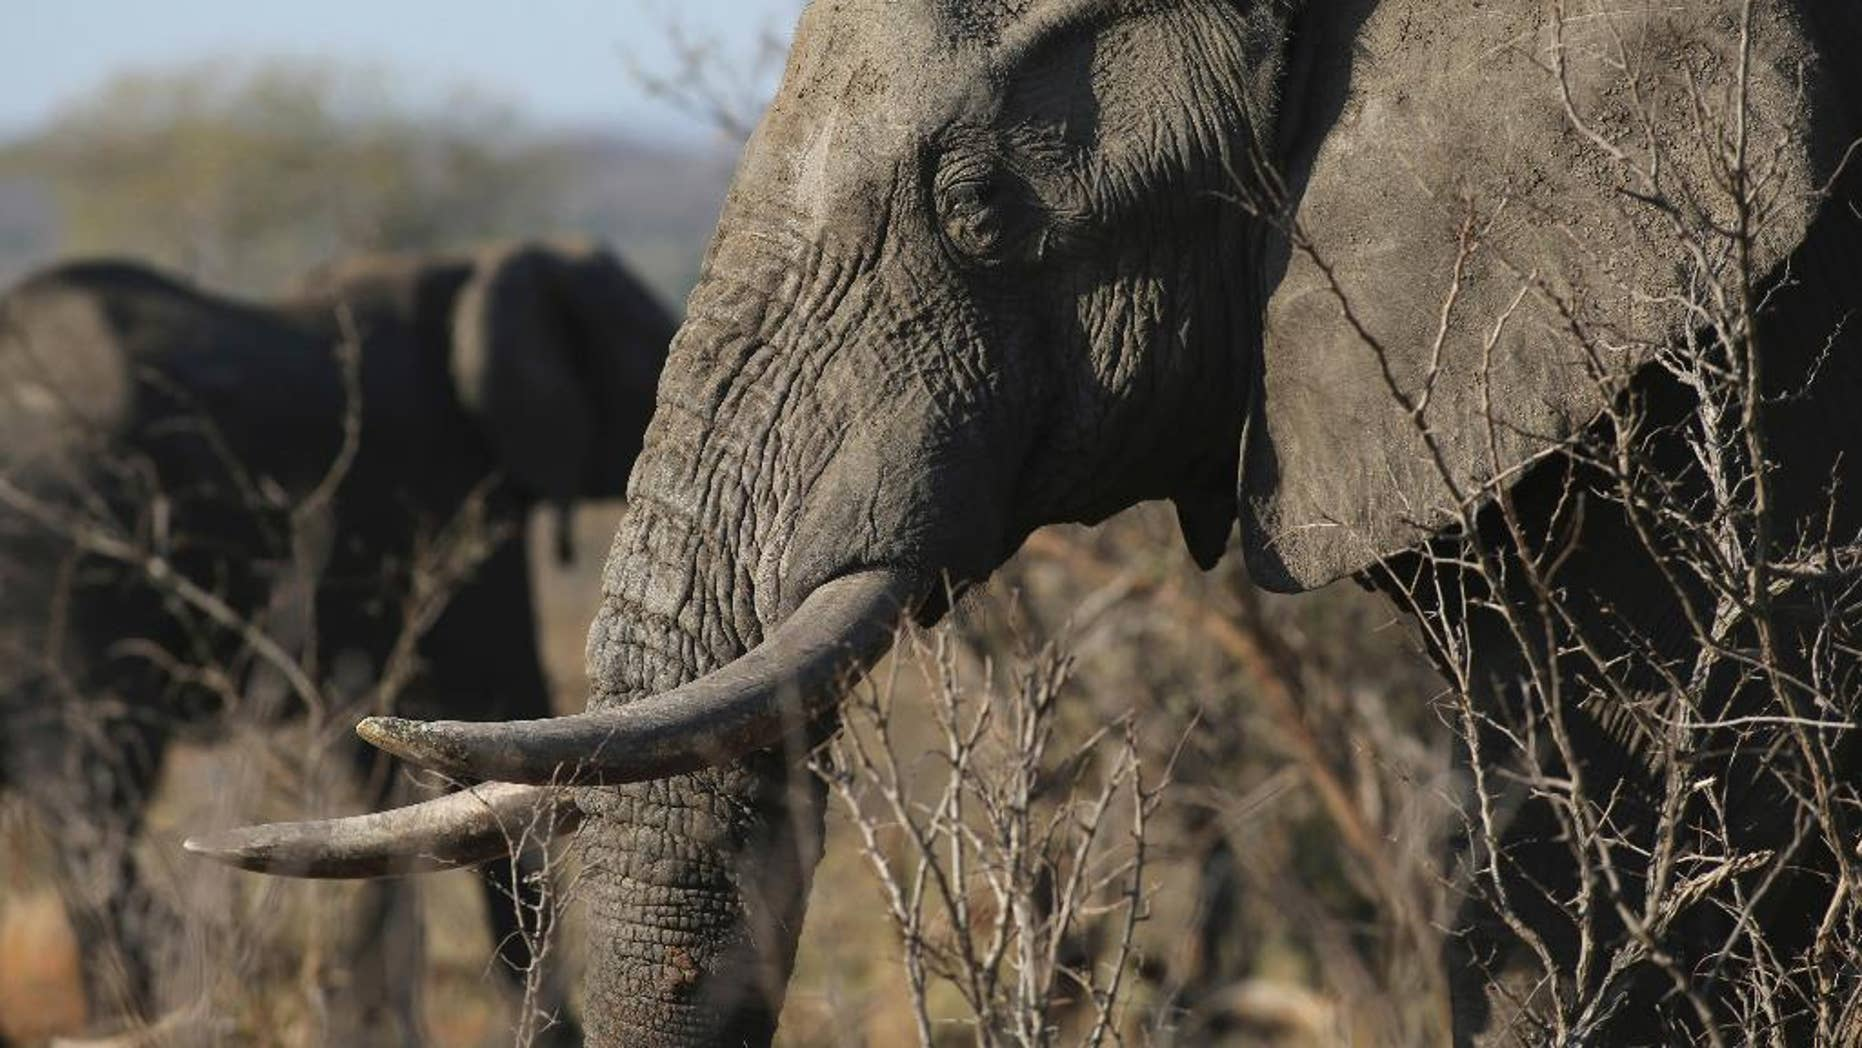 FILE - In this file photo taken Friday, Sept. 30, 2016, an elephant walks through the bush at the Southern African Wildlife College on the edge of Kruger National Park in South Africa. The Chinese government said in a statement released on Friday Dec. 30, 2016, it will shut down its official ivory trade at the end of 2017 in a move designed to curb the mass slaughter of African elephants.(AP Photo/Denis Farrell, FILE)